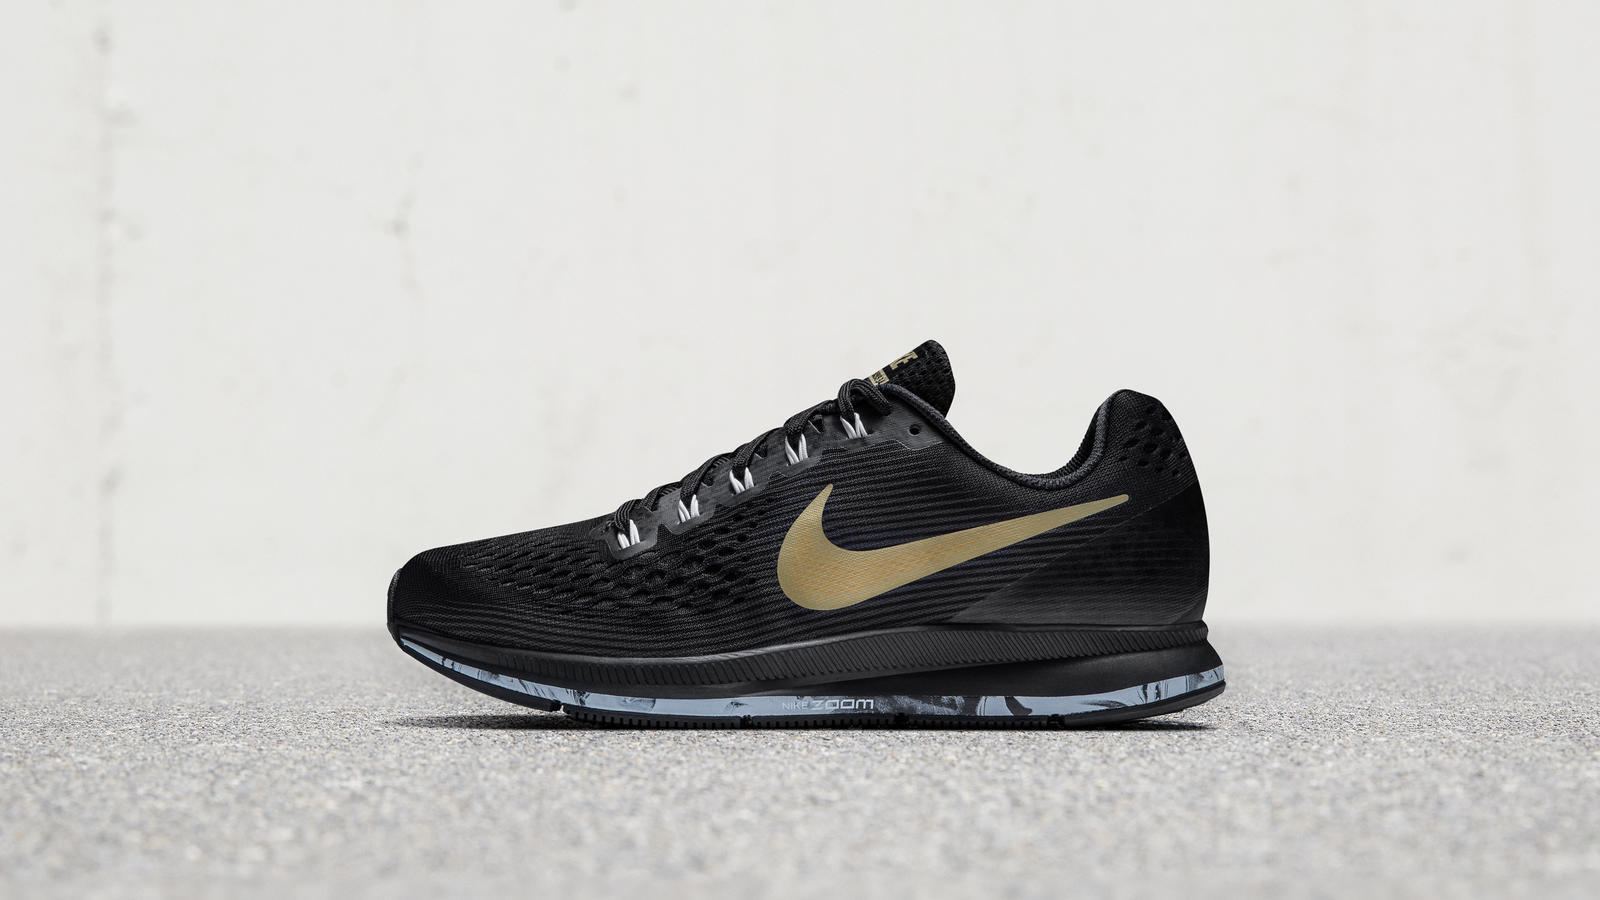 2bddce60ba3 Nike Air Zoom Pegasus 34 - Nike News